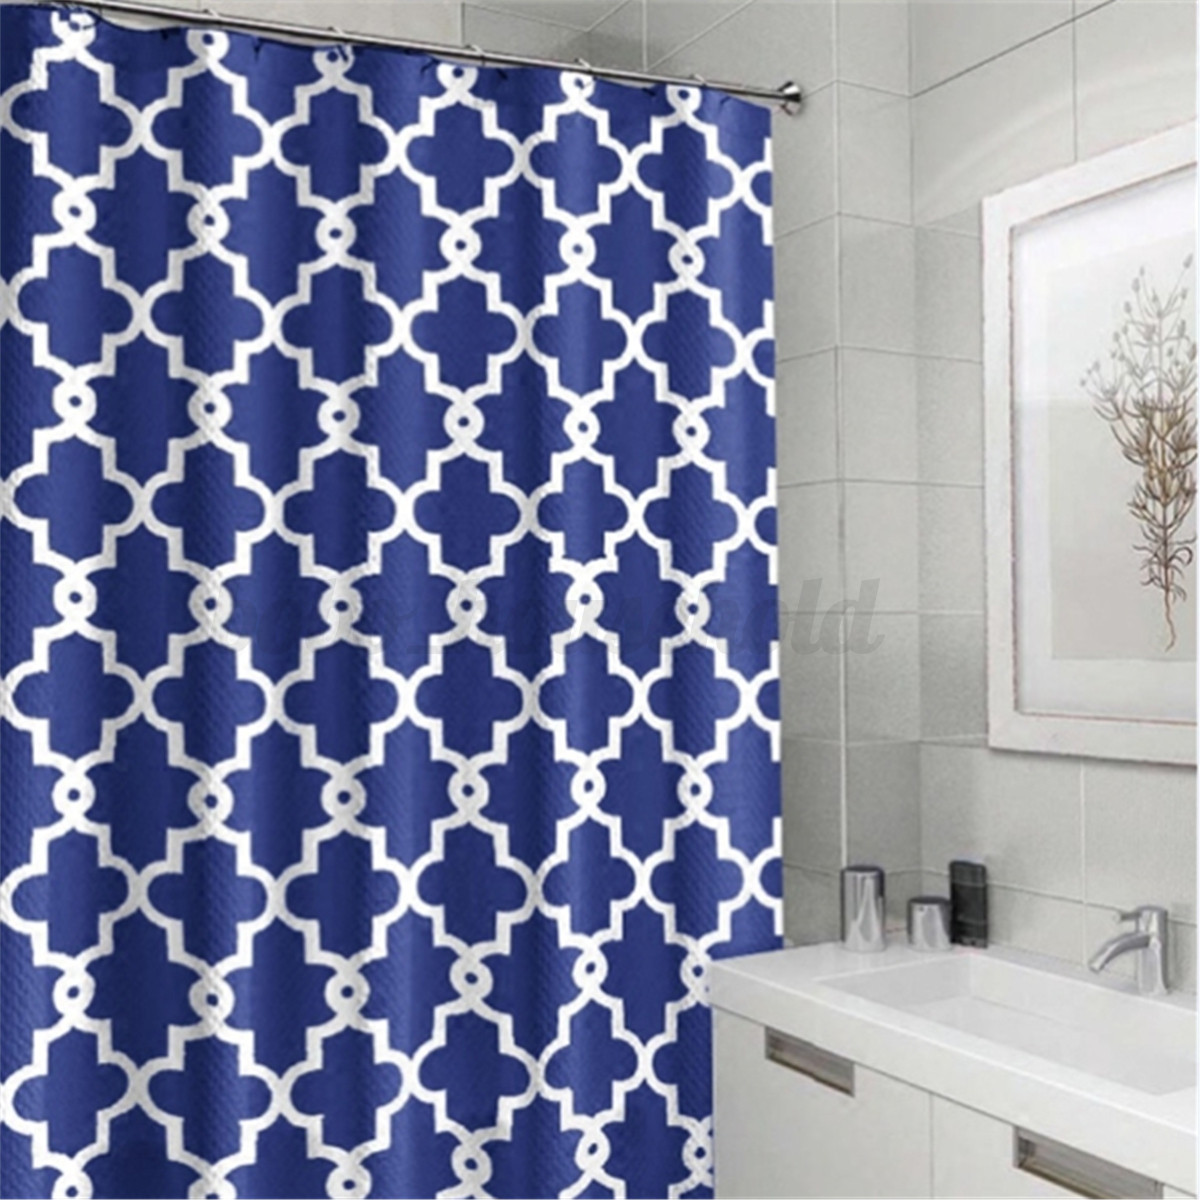 Modern Geometric Designer Bathroom Shower Curtain With 12 Hooks 180cmx180cm Ebay